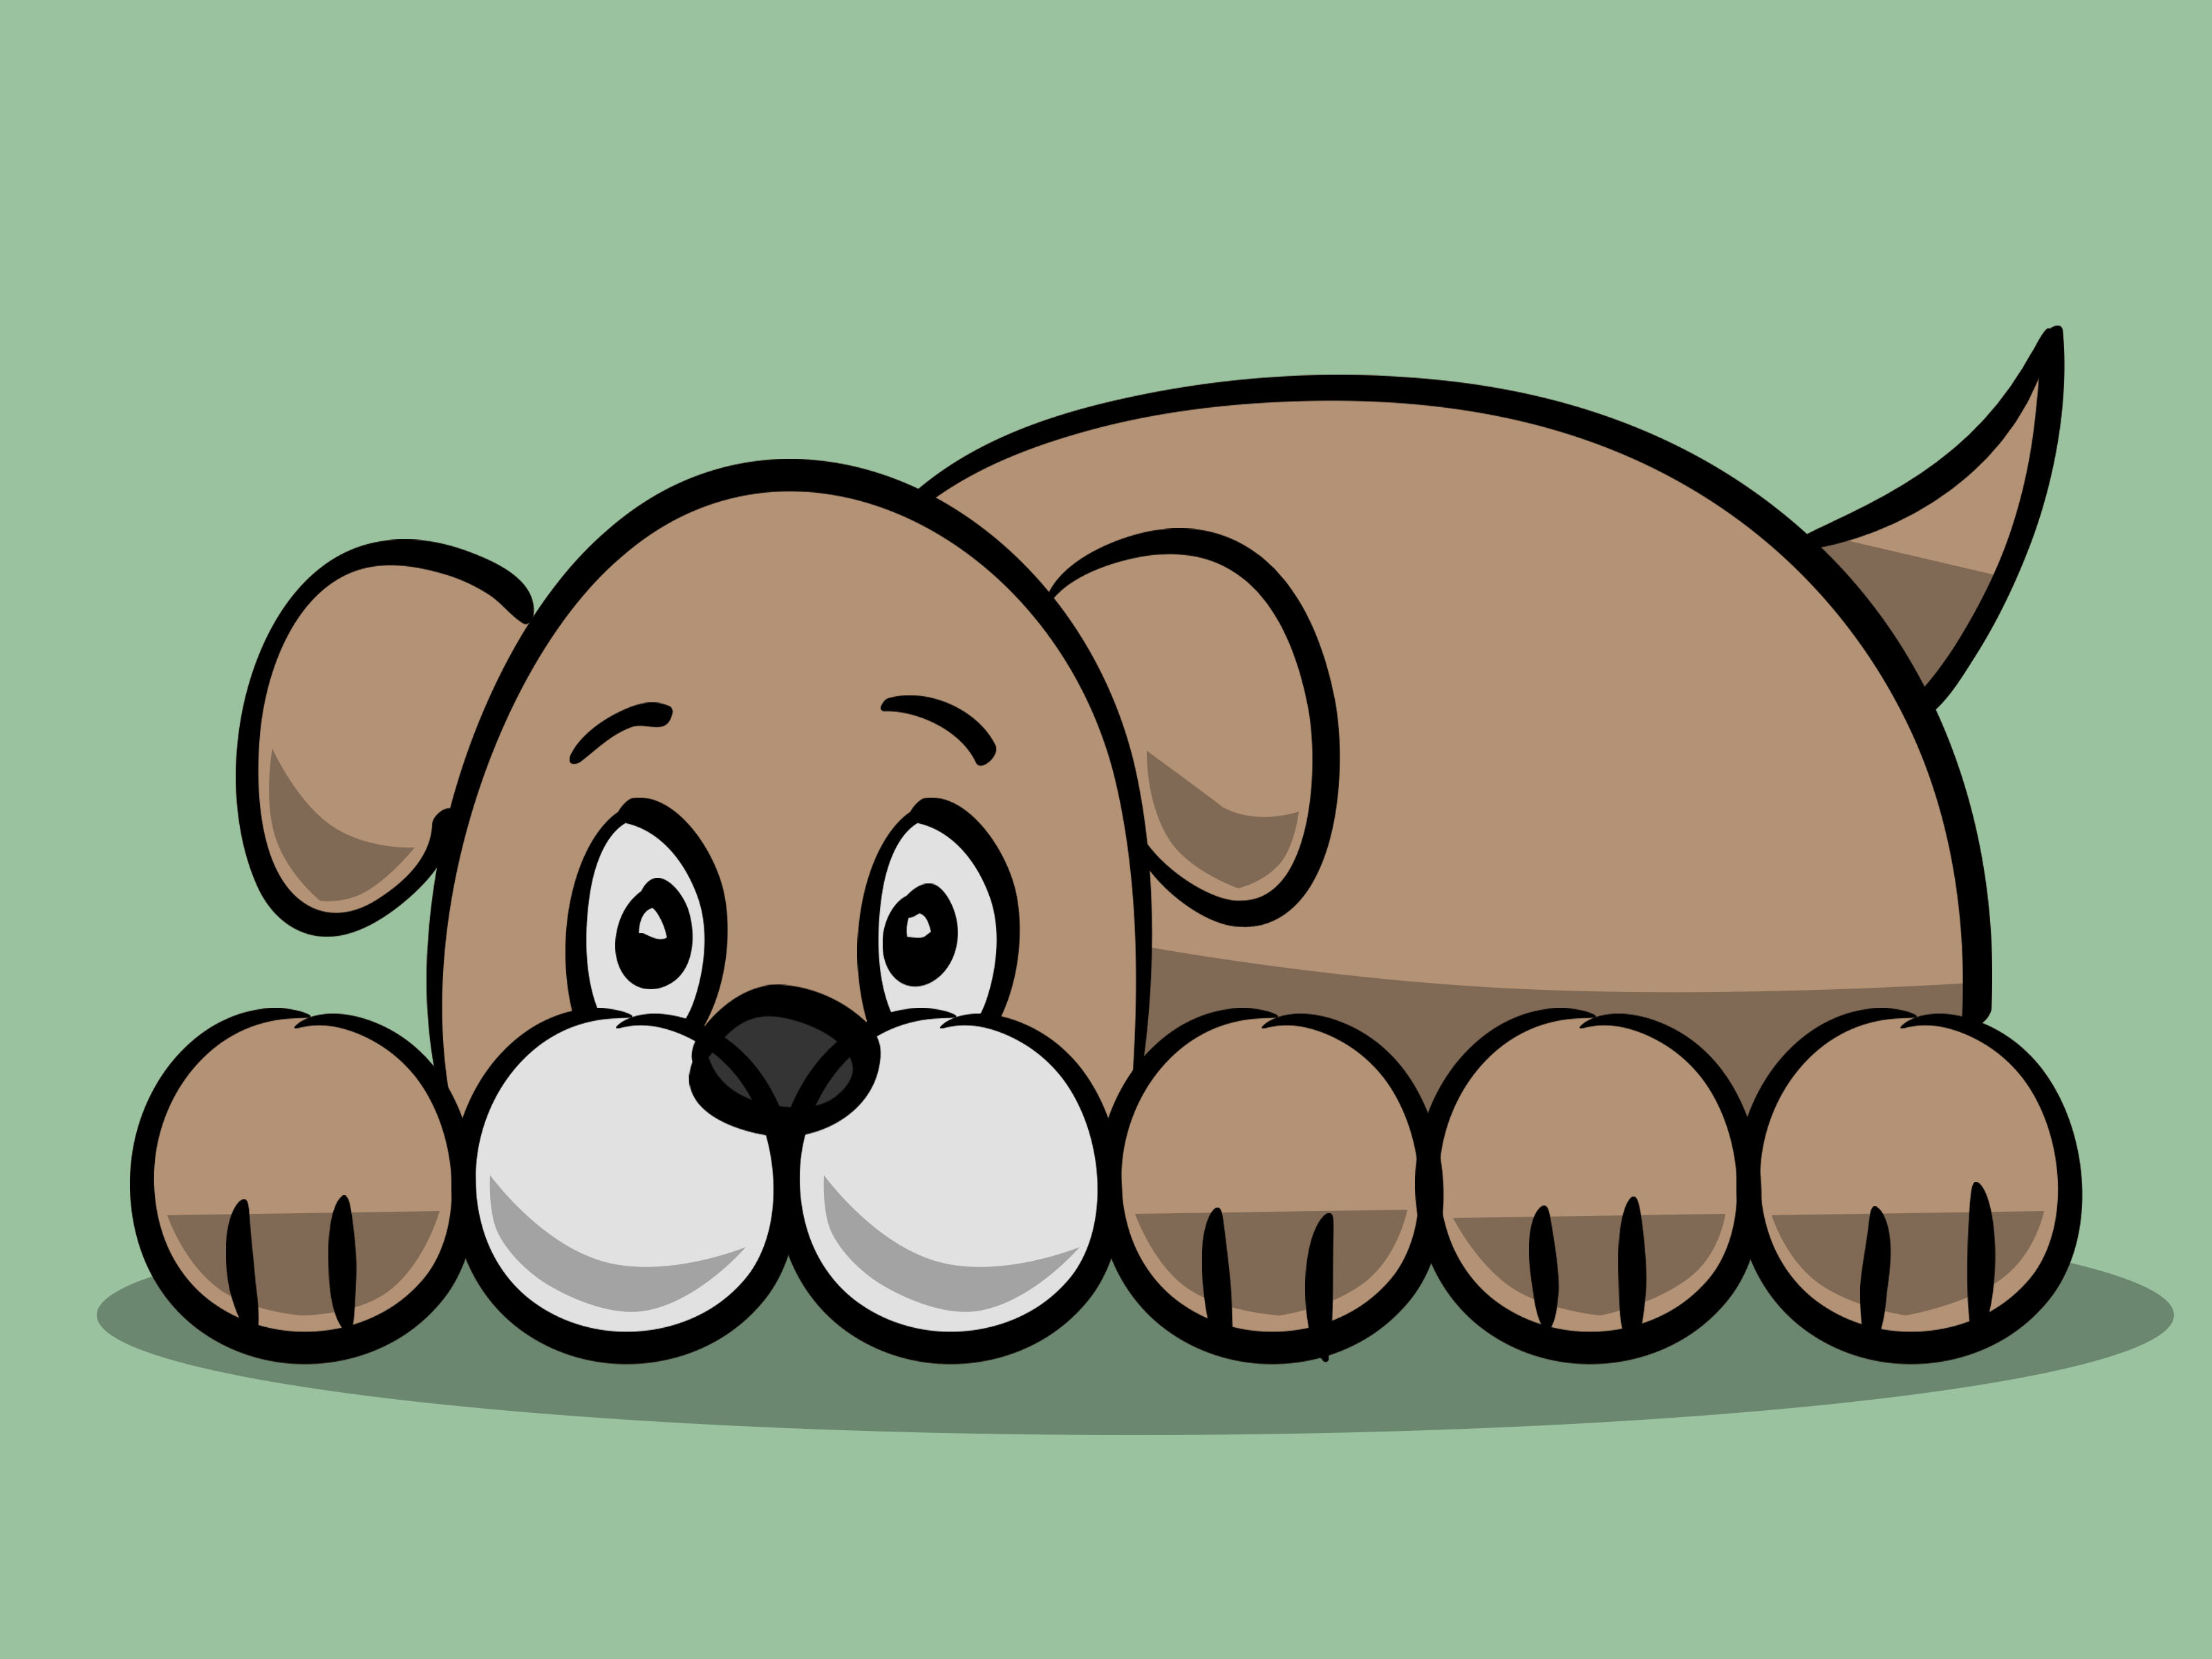 3200x2400 Easy Cartoon Drawing Pictures My Blog